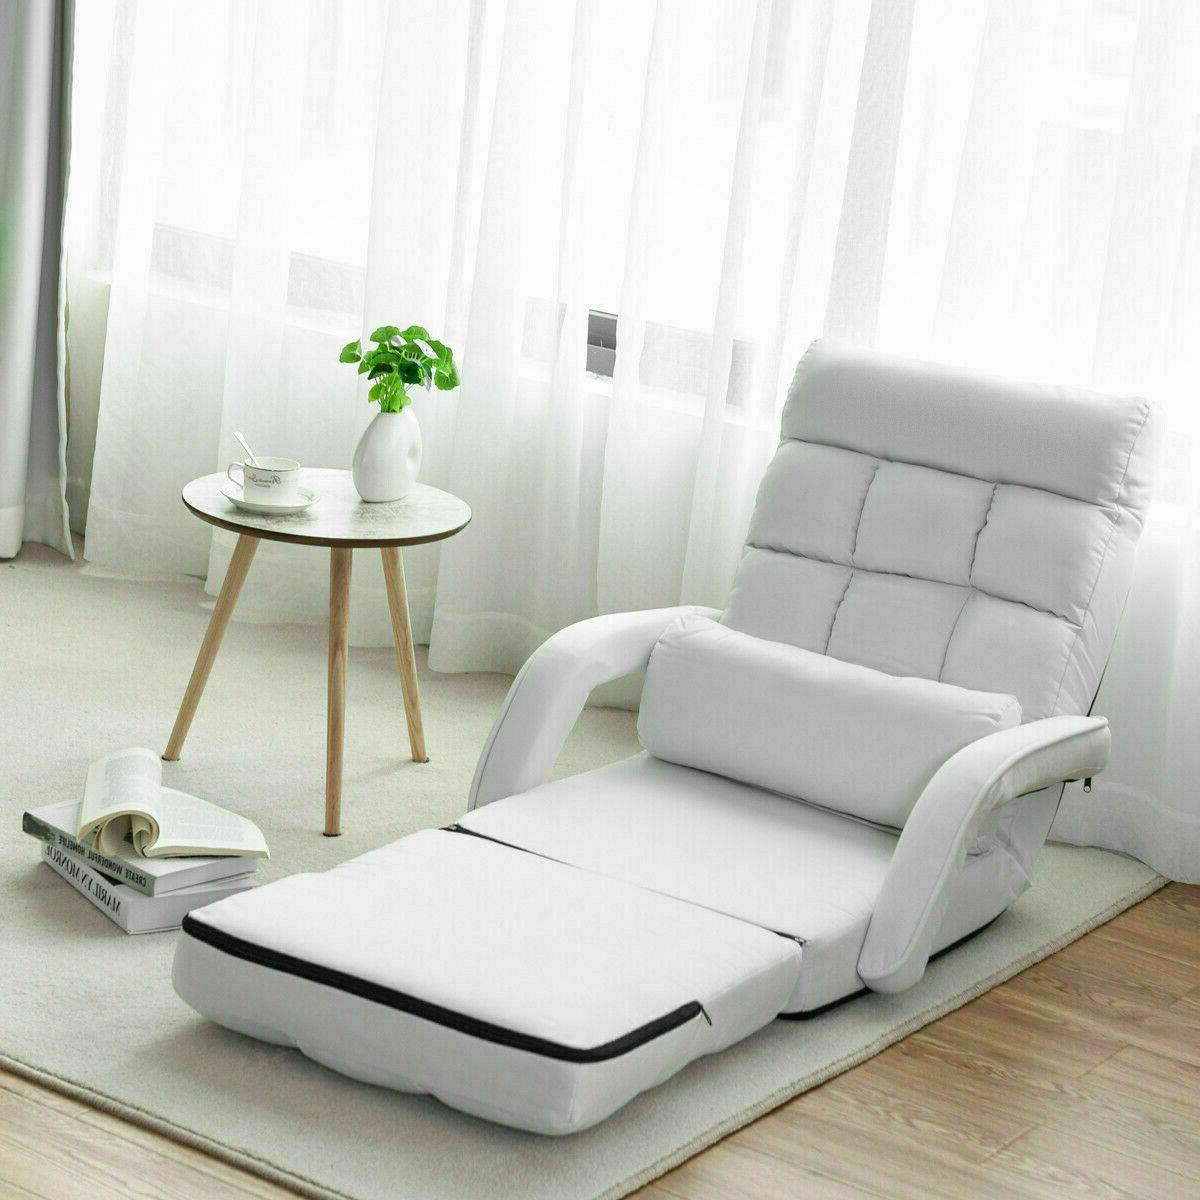 Floor Convertible Bed With Massage Pillow Sofa